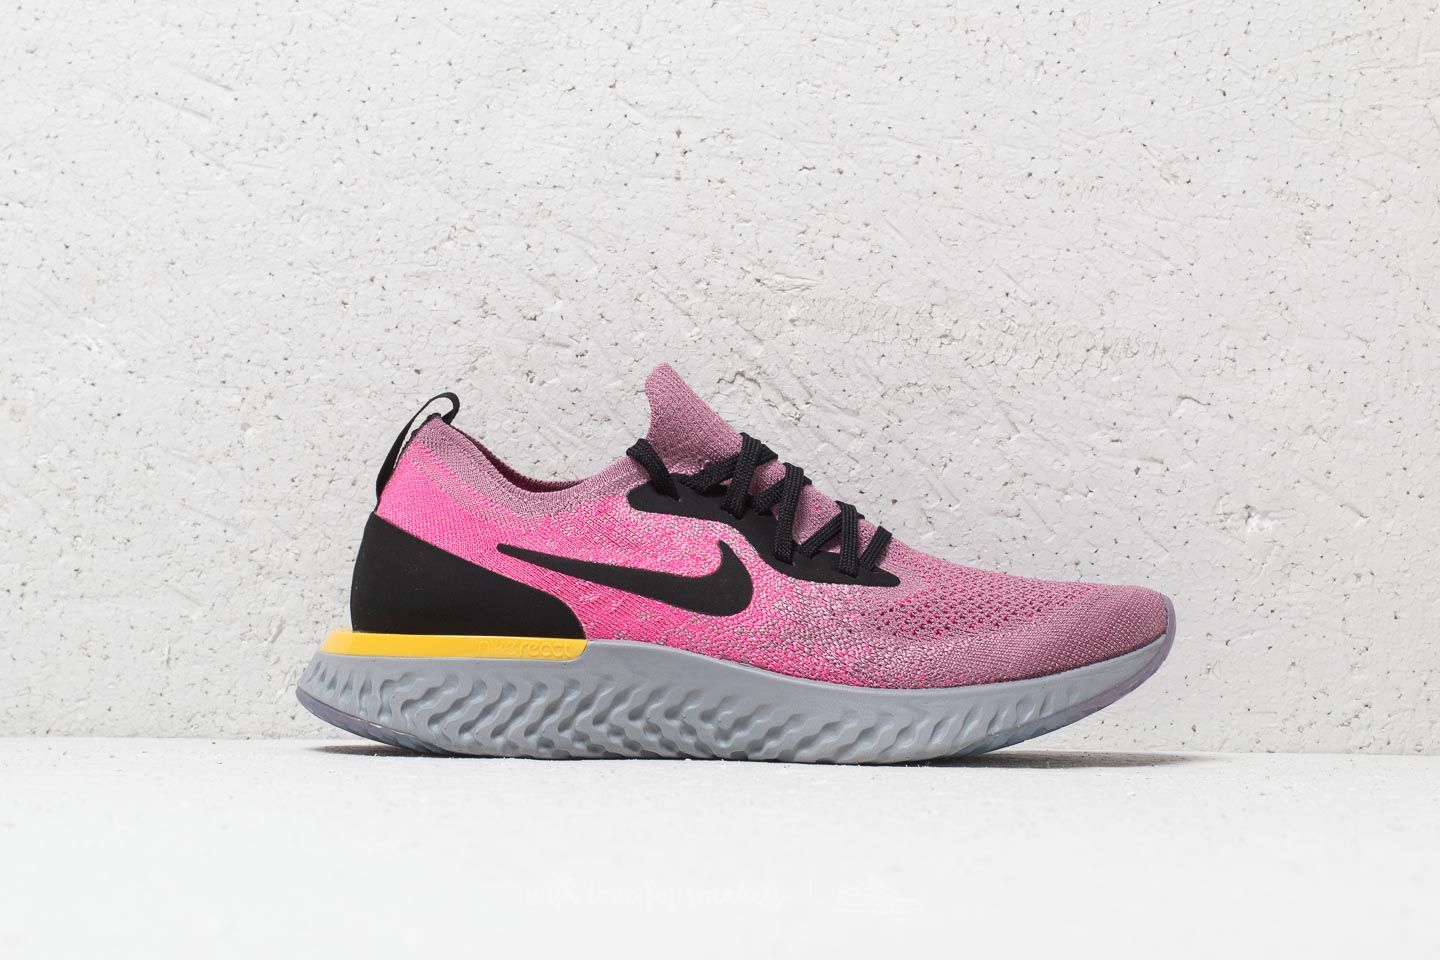 12b3bfdb1377 Nike Epic React Flyknit (GS) Plum Dust  Black-Pink Blast at a